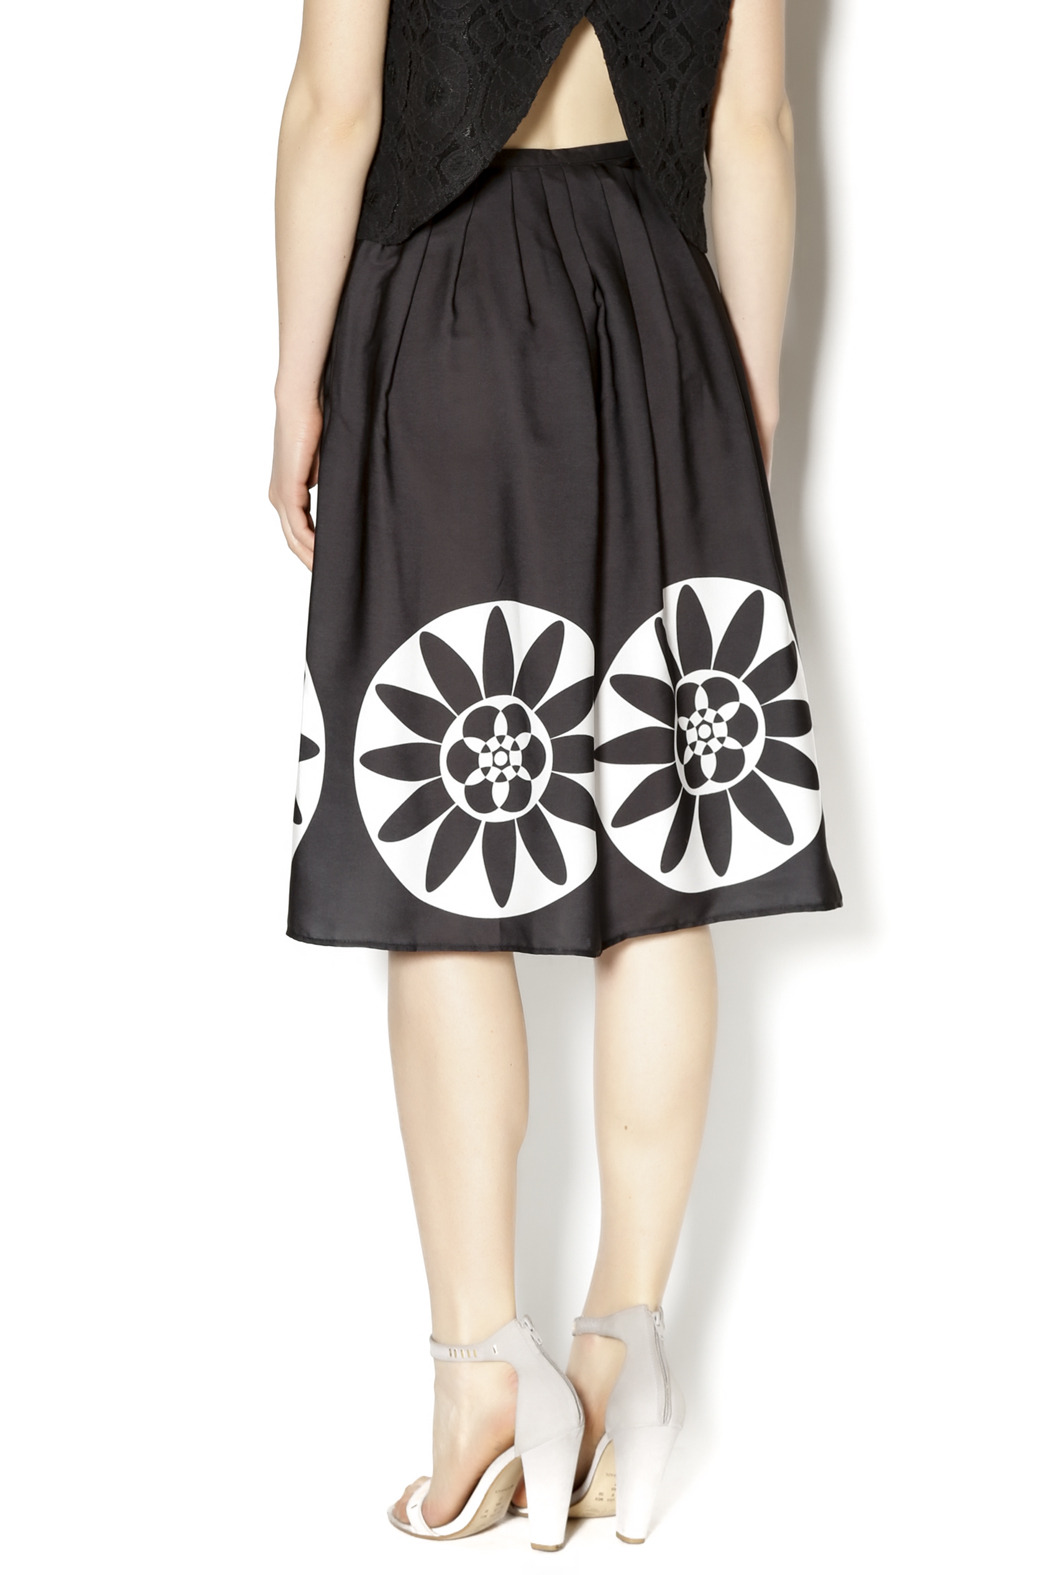 desigual pleated circle skirt from florida by i tesori